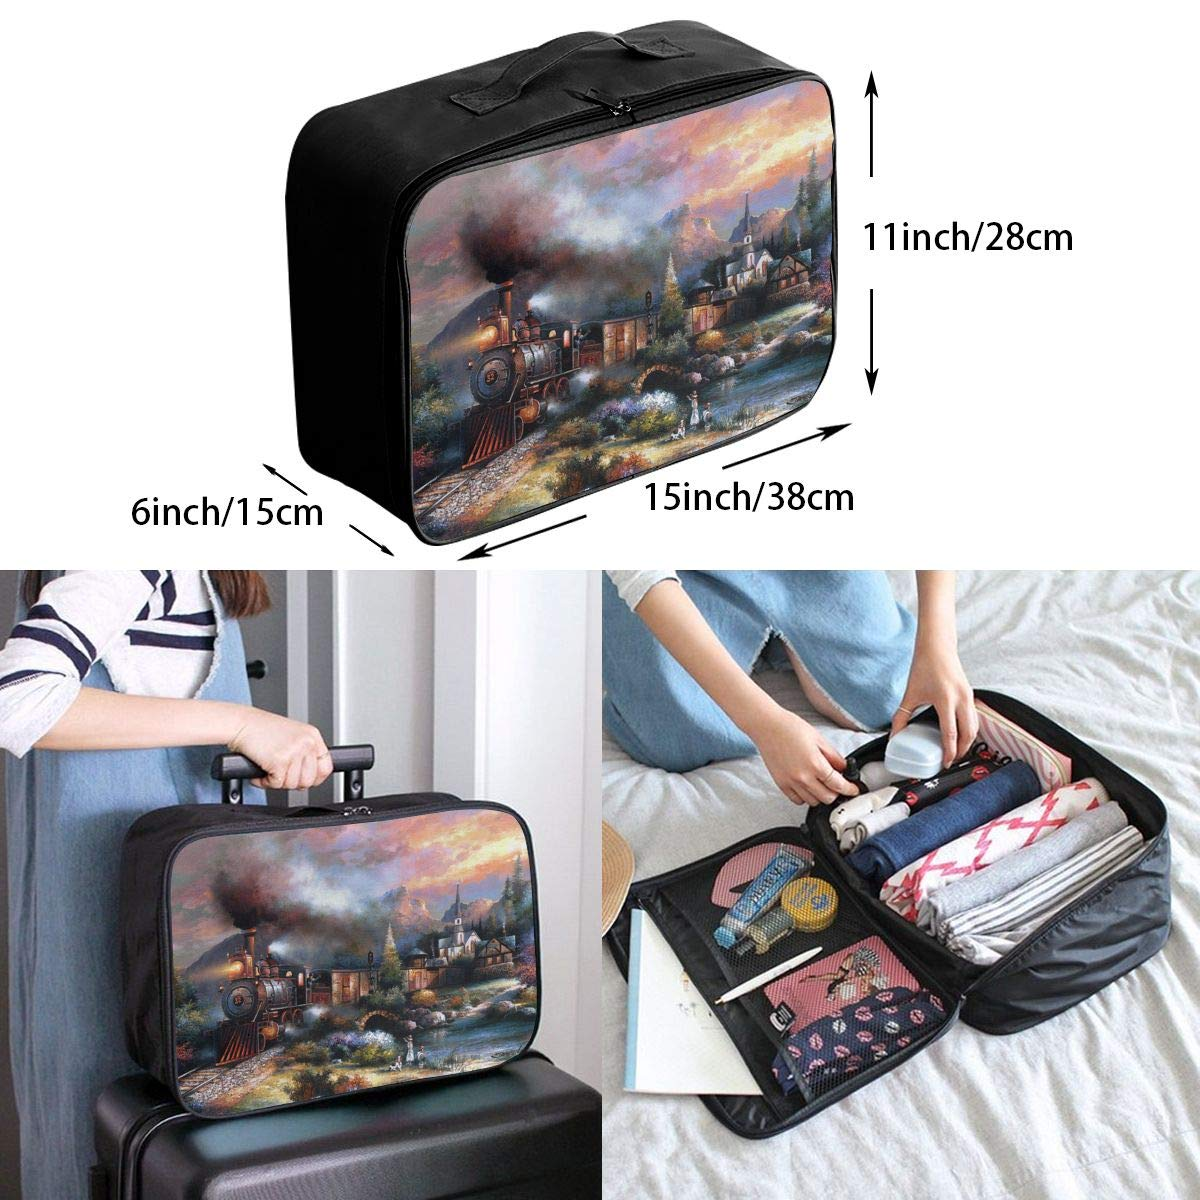 Travel Luggage Duffle Bag Lightweight Portable Handbag Fantasy Train Track Pattern Large Capacity Waterproof Foldable Storage Tote